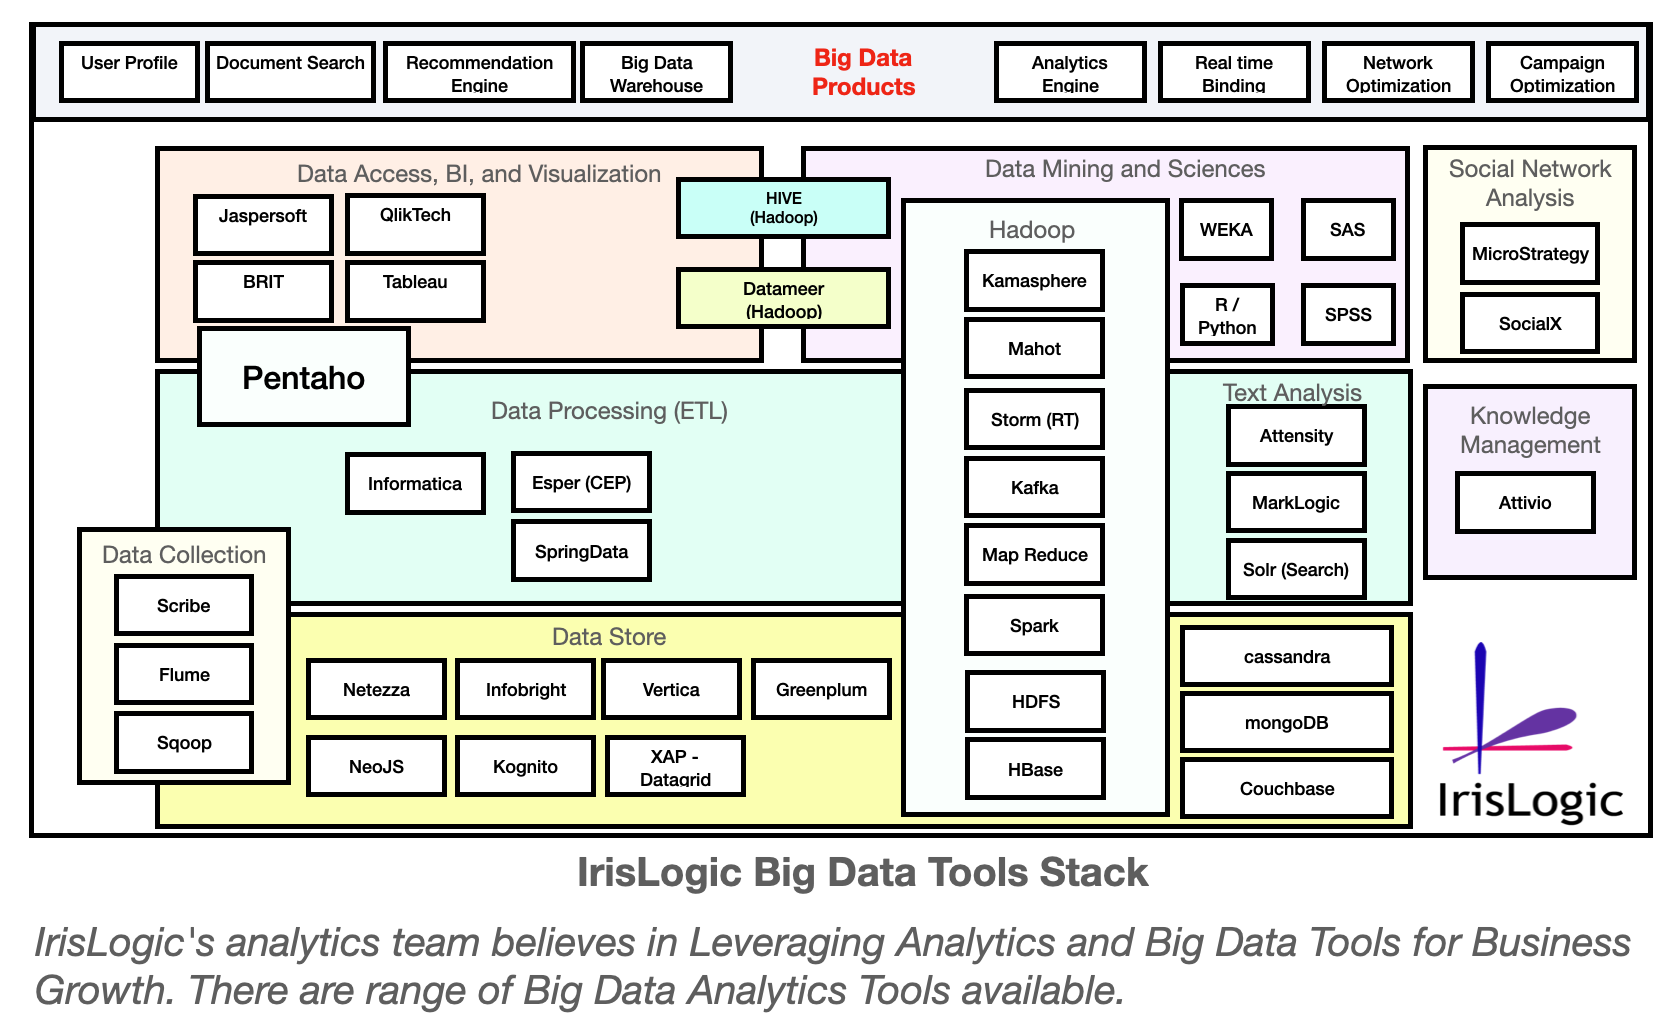 IrisLogic Big Data Tool Stack